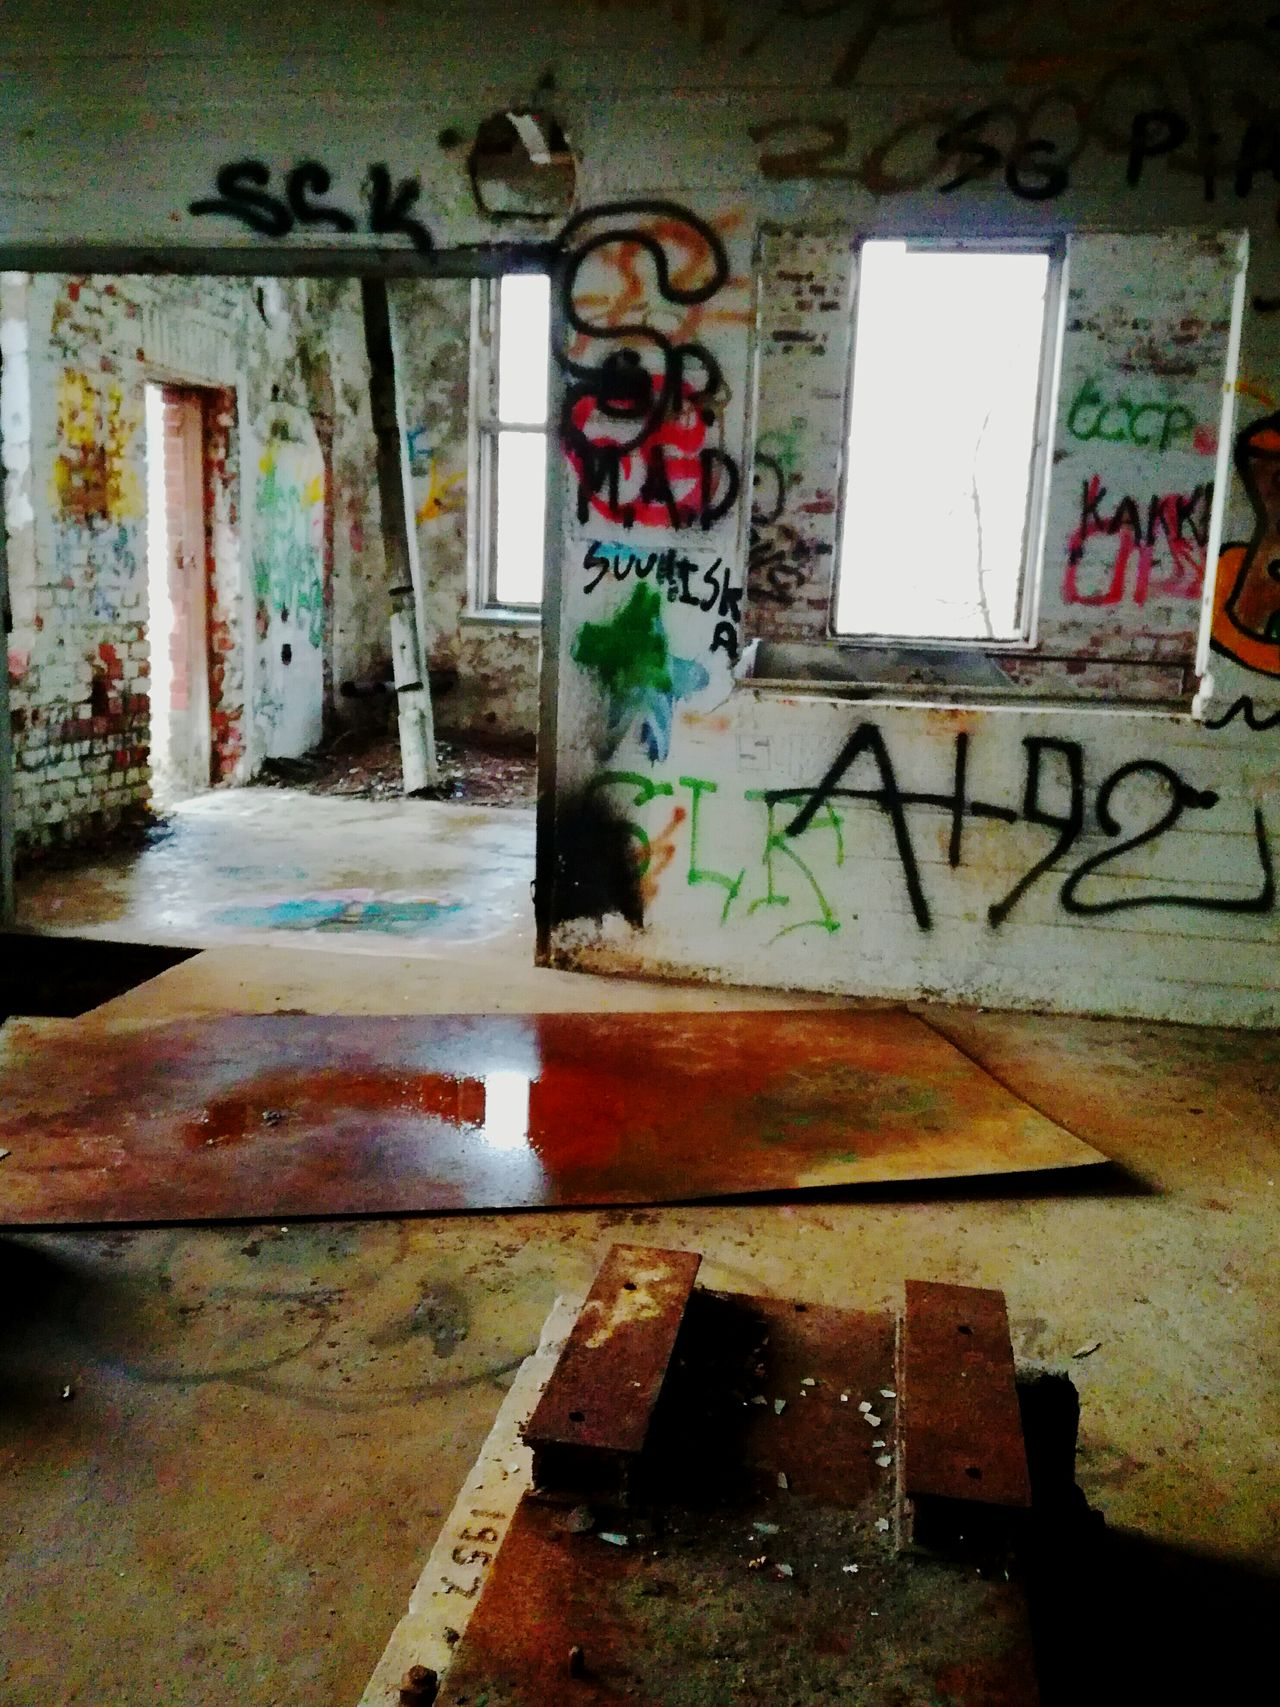 Multi Colored No People Architecture Window Text Abandonedplaces Halla Finland Light And Shadow Abandonedbuilding Glassless Window Industrial Exploring Adventuring Abandoned_junkies Local History Past Graffiti Walls Architecture See Through Colors Rust Empty Ruins